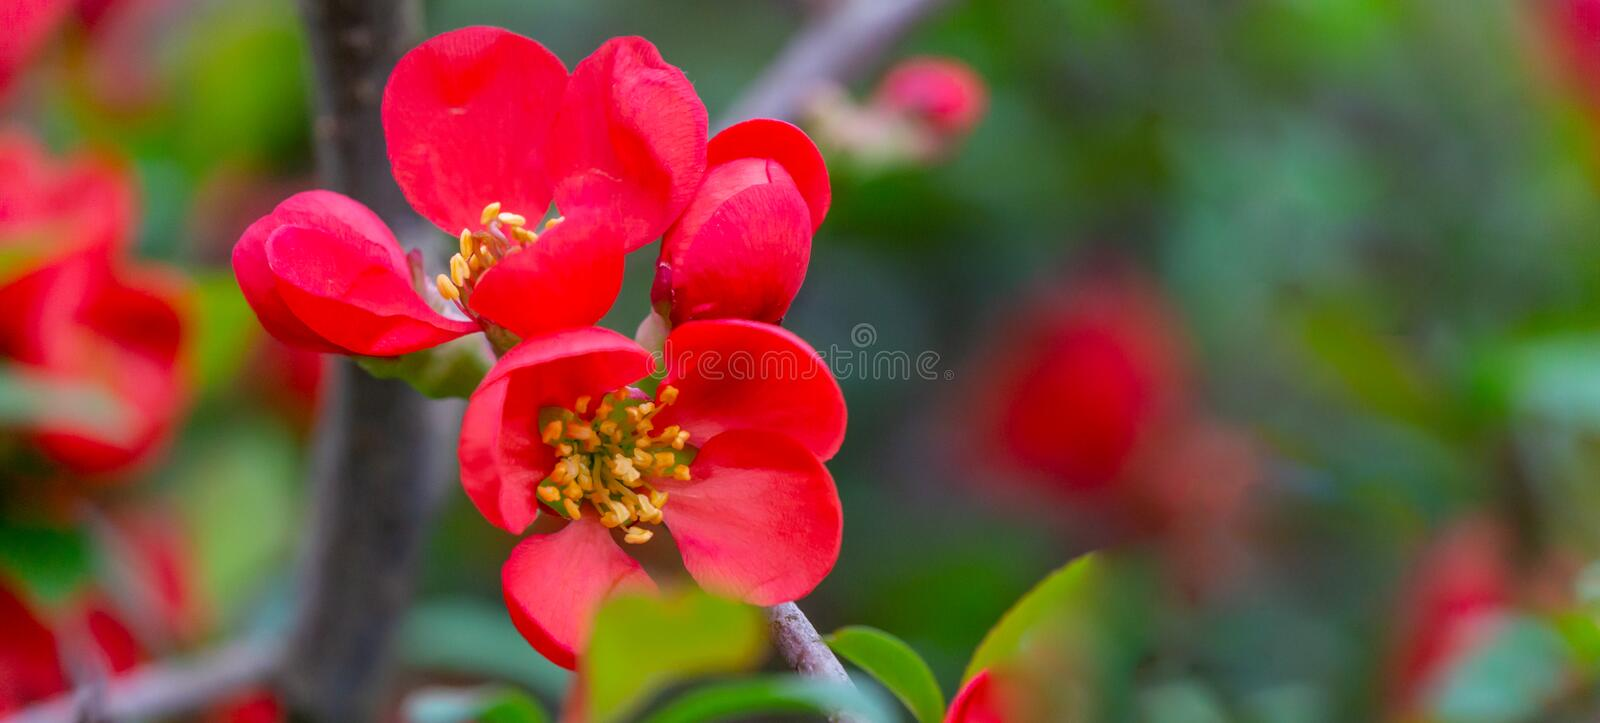 Macro of bright red spring flowering Japanese quince or Chaenomeles japonica on the blurred garden background. Sunny day. Selective focus. Interesting nature stock images